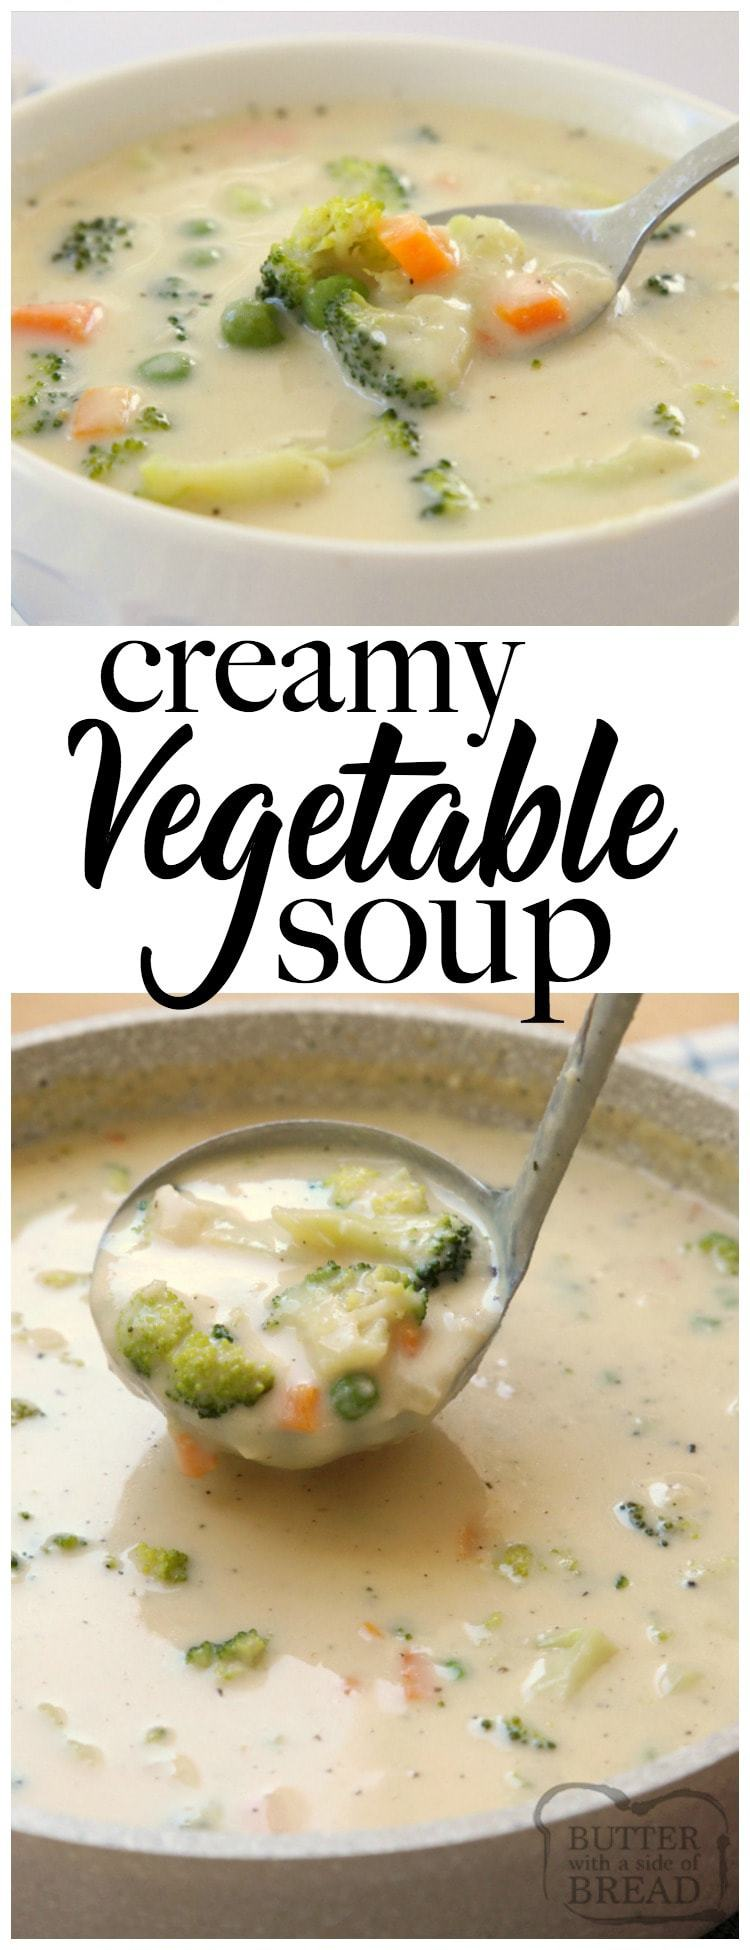 Creamy Vegetable Soup made easy in 30 minutes or less! Simple, flavorful & comforting vegetable soup recipe perfect for cold nights. Time saving tips included too! Simple #vegetable #soup #chowder #recipe from Butter With A Side of Bread